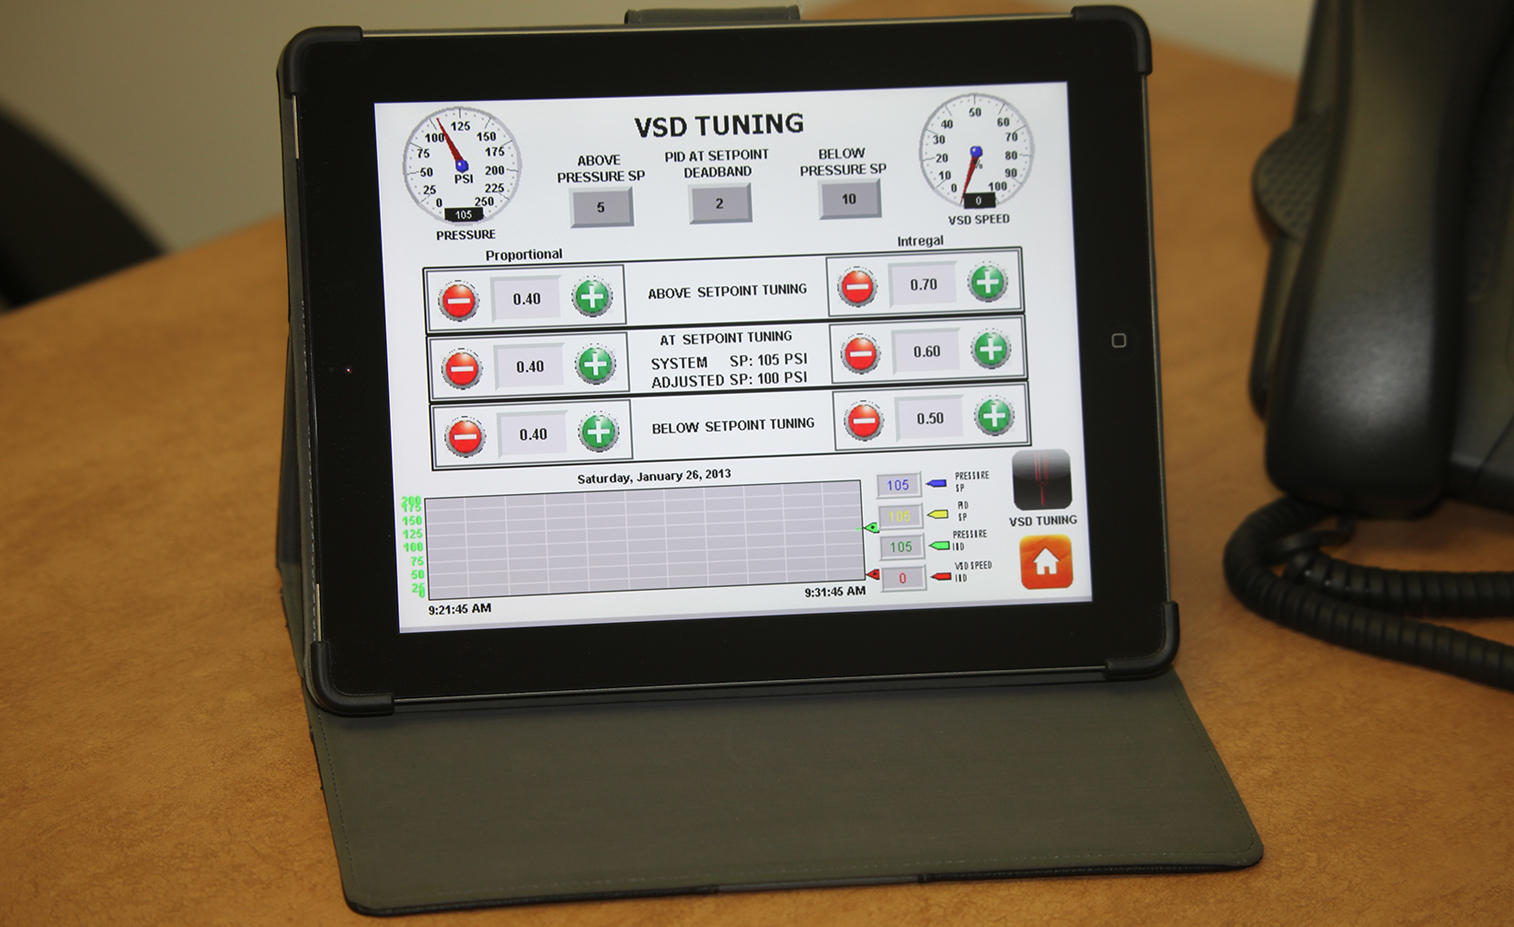 Image showing MCI's Remote Monitoring capability on ipad.